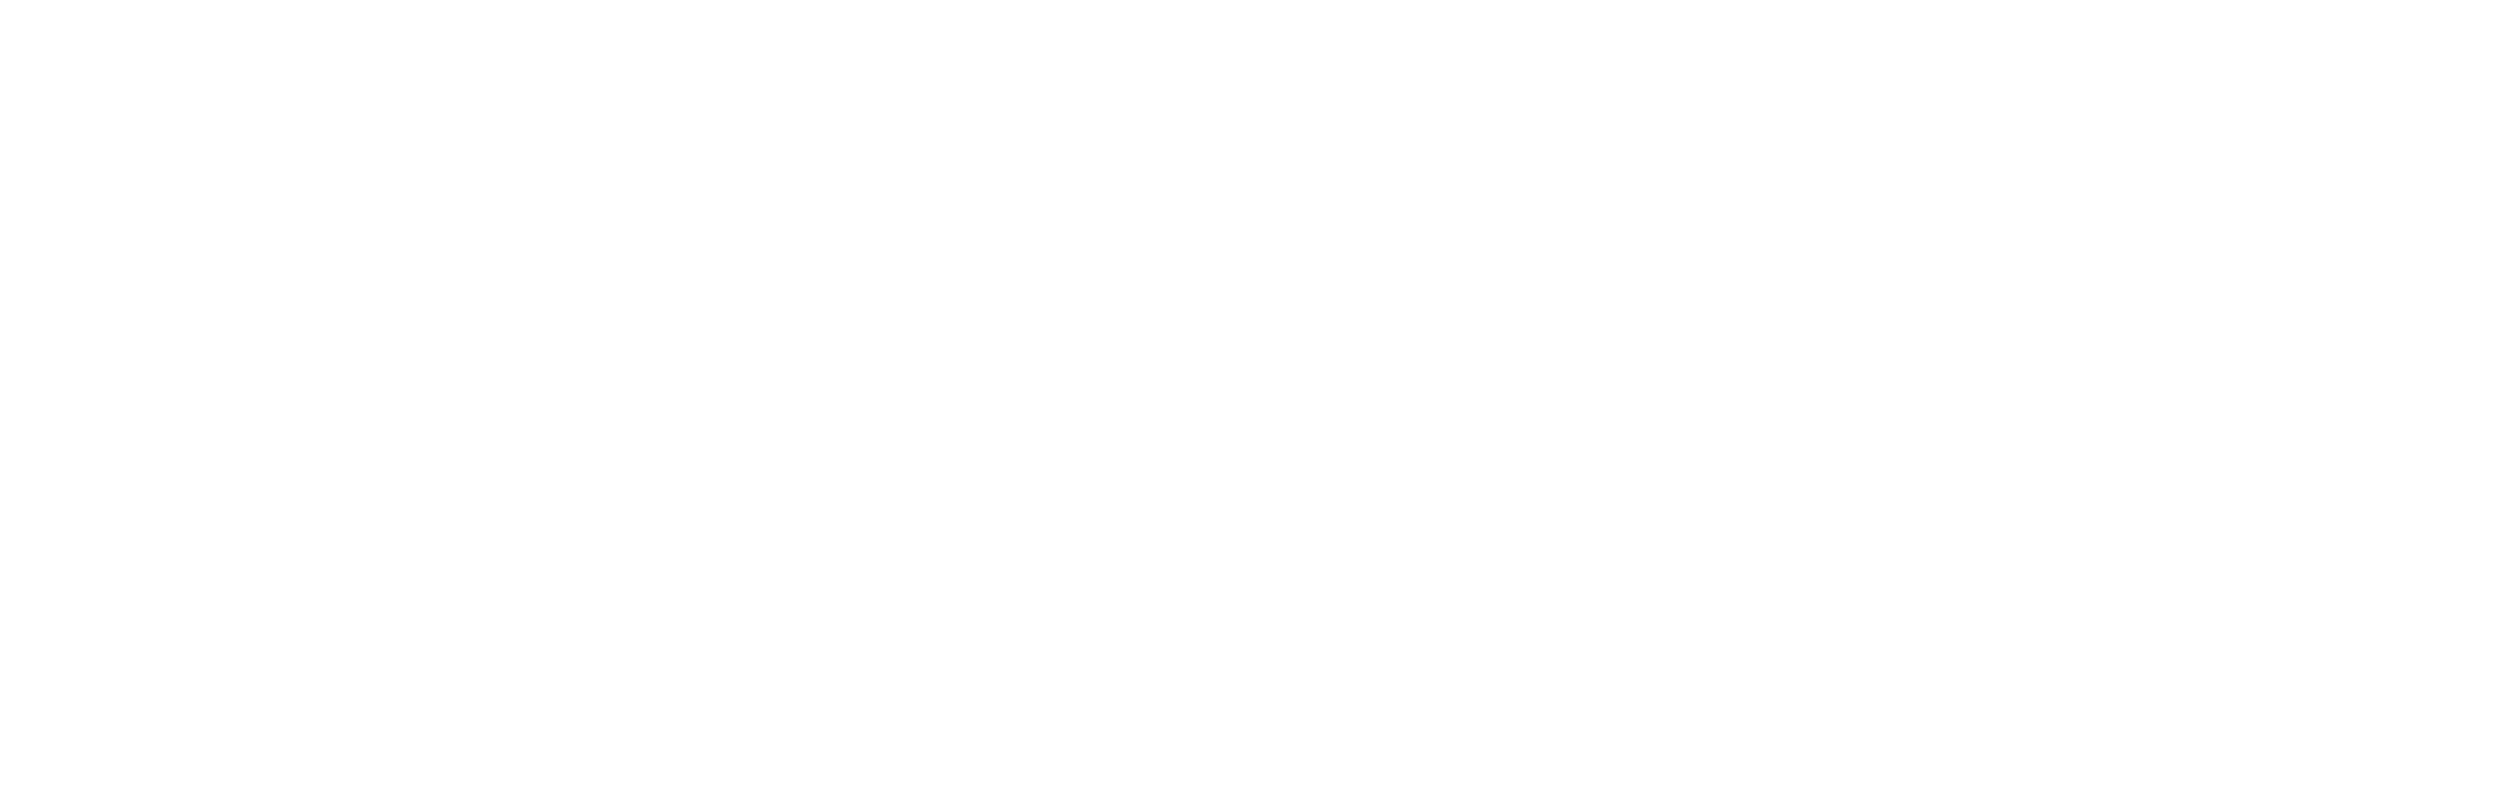 xero-bronze-partner + cert-advisor-badges-white.png